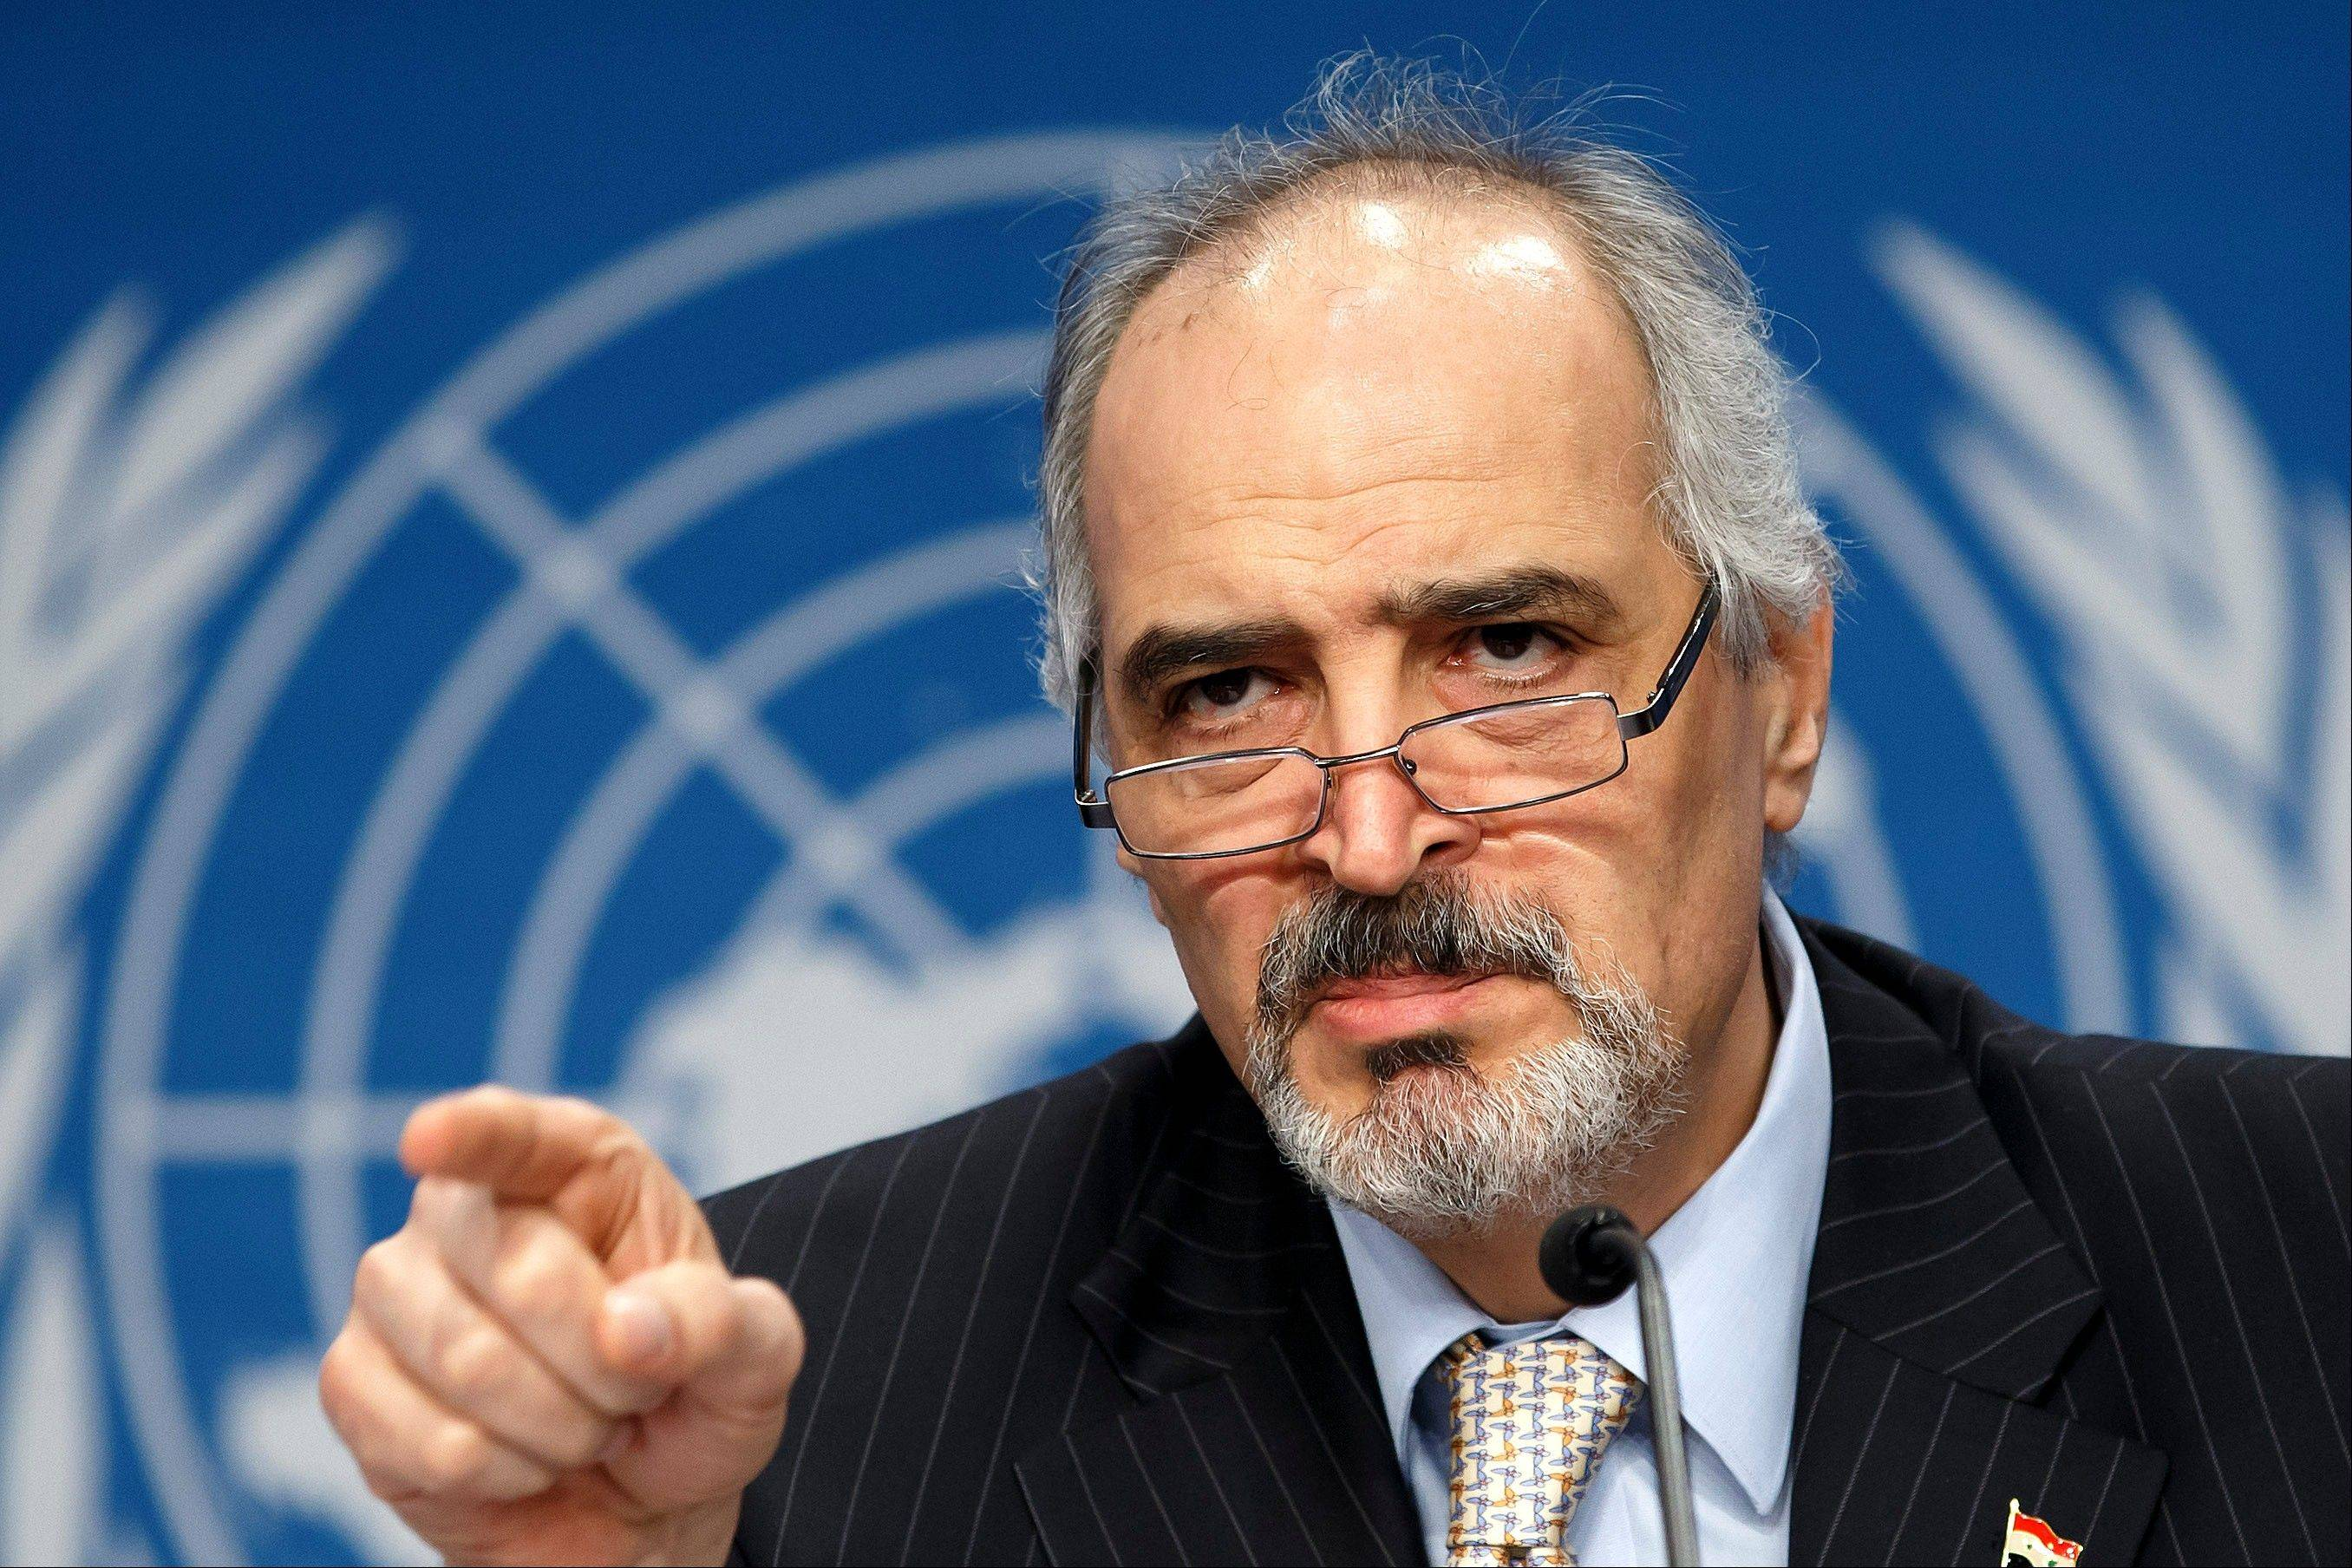 Syrian Ambassador to the United Nations, Bashar Ja'afari, speaks during a press conference Wednesday, the first day of Syrian peace talks in Montreux, Switzerland.